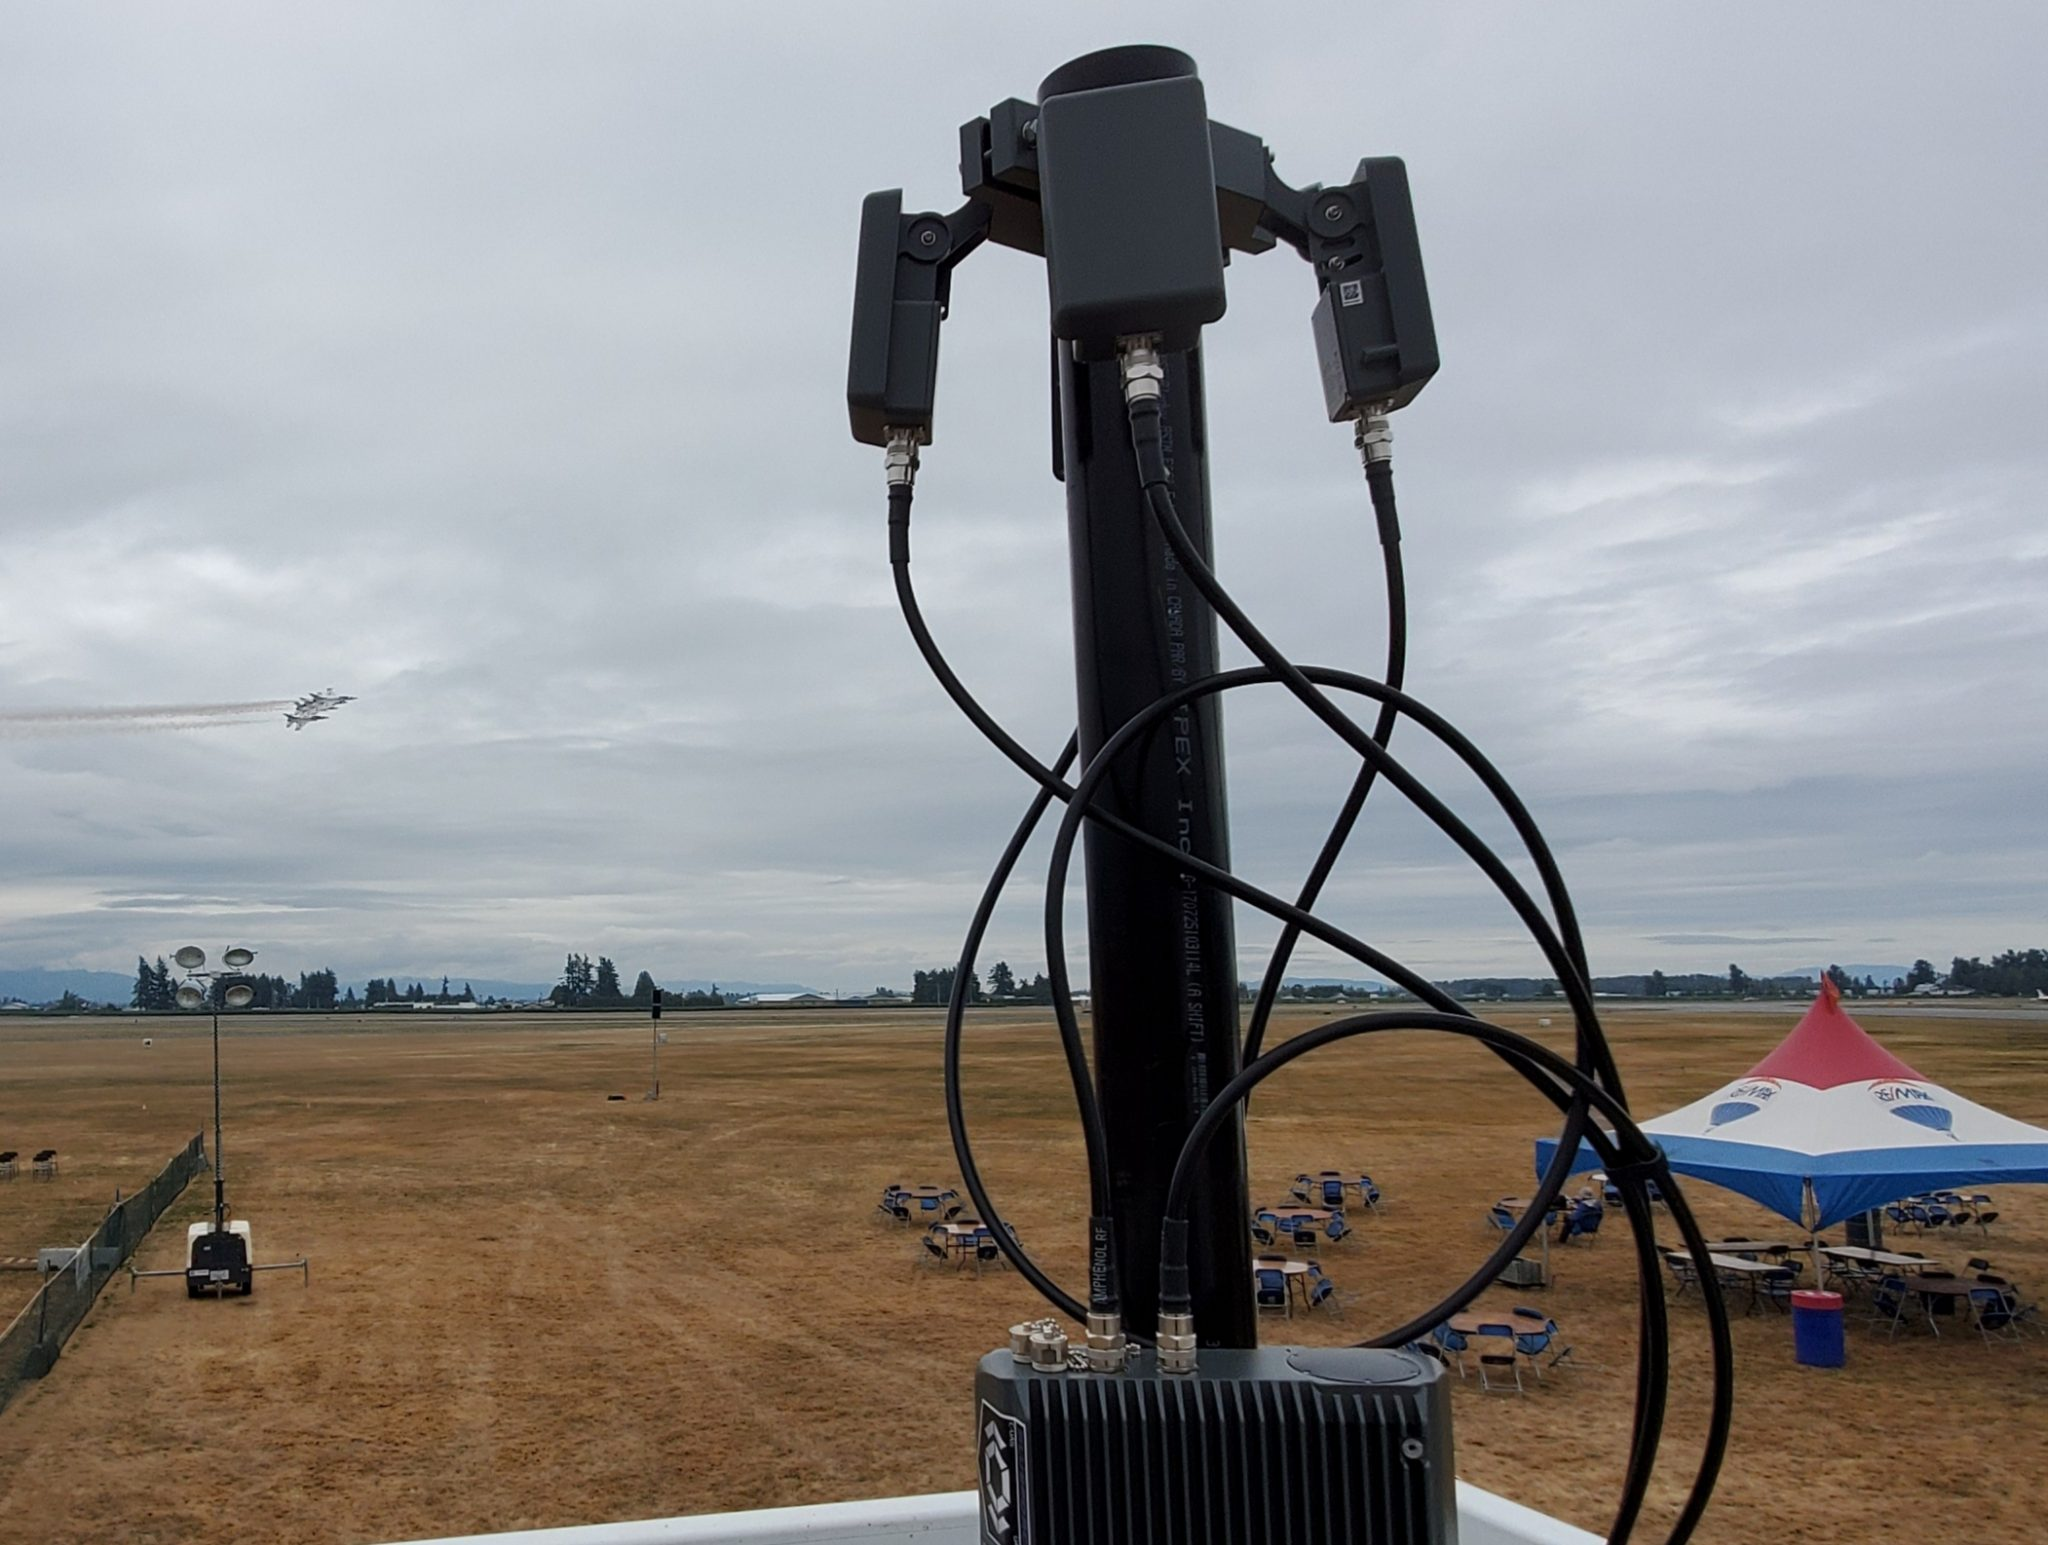 Drone Detection System Deployed at Abbotsford Airshow; Located Drones and Pilots More Than 20 Kilometres Away